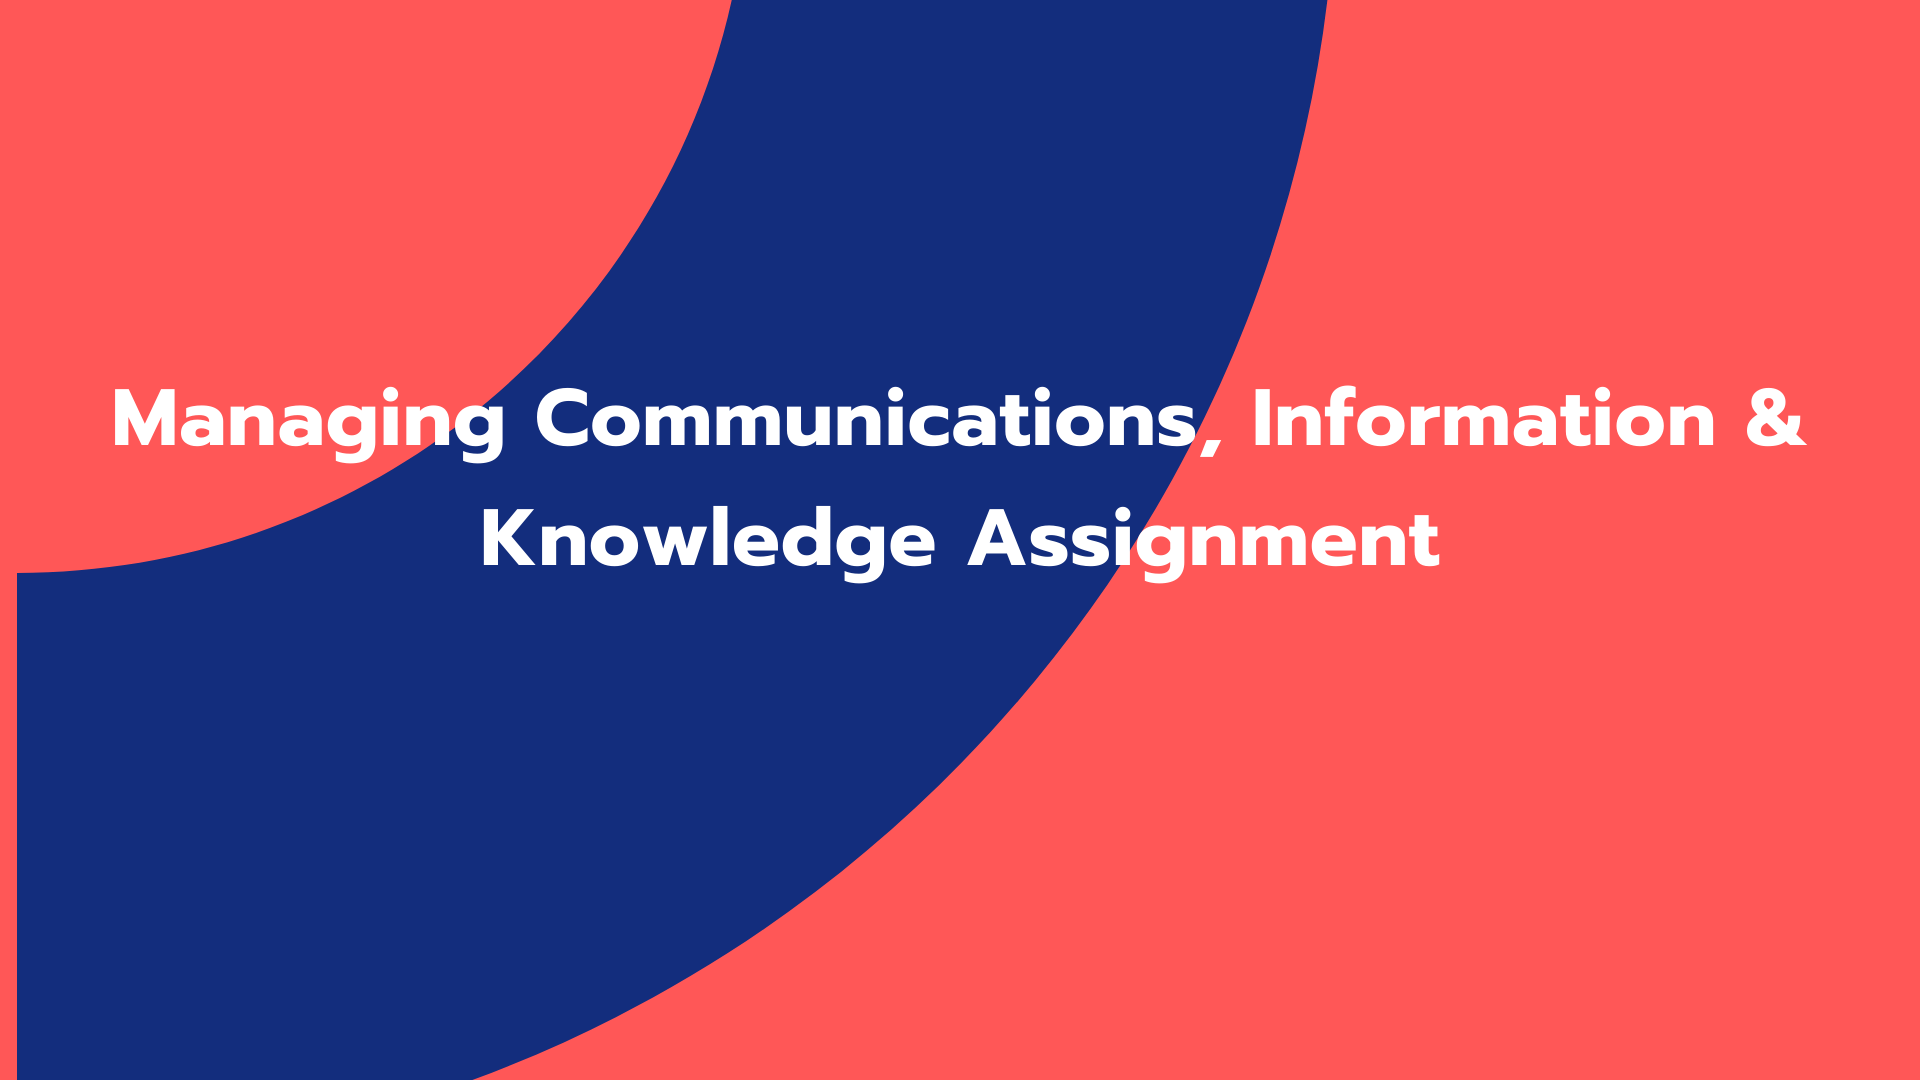 Managing Communications, Information & Knowledge Assignment